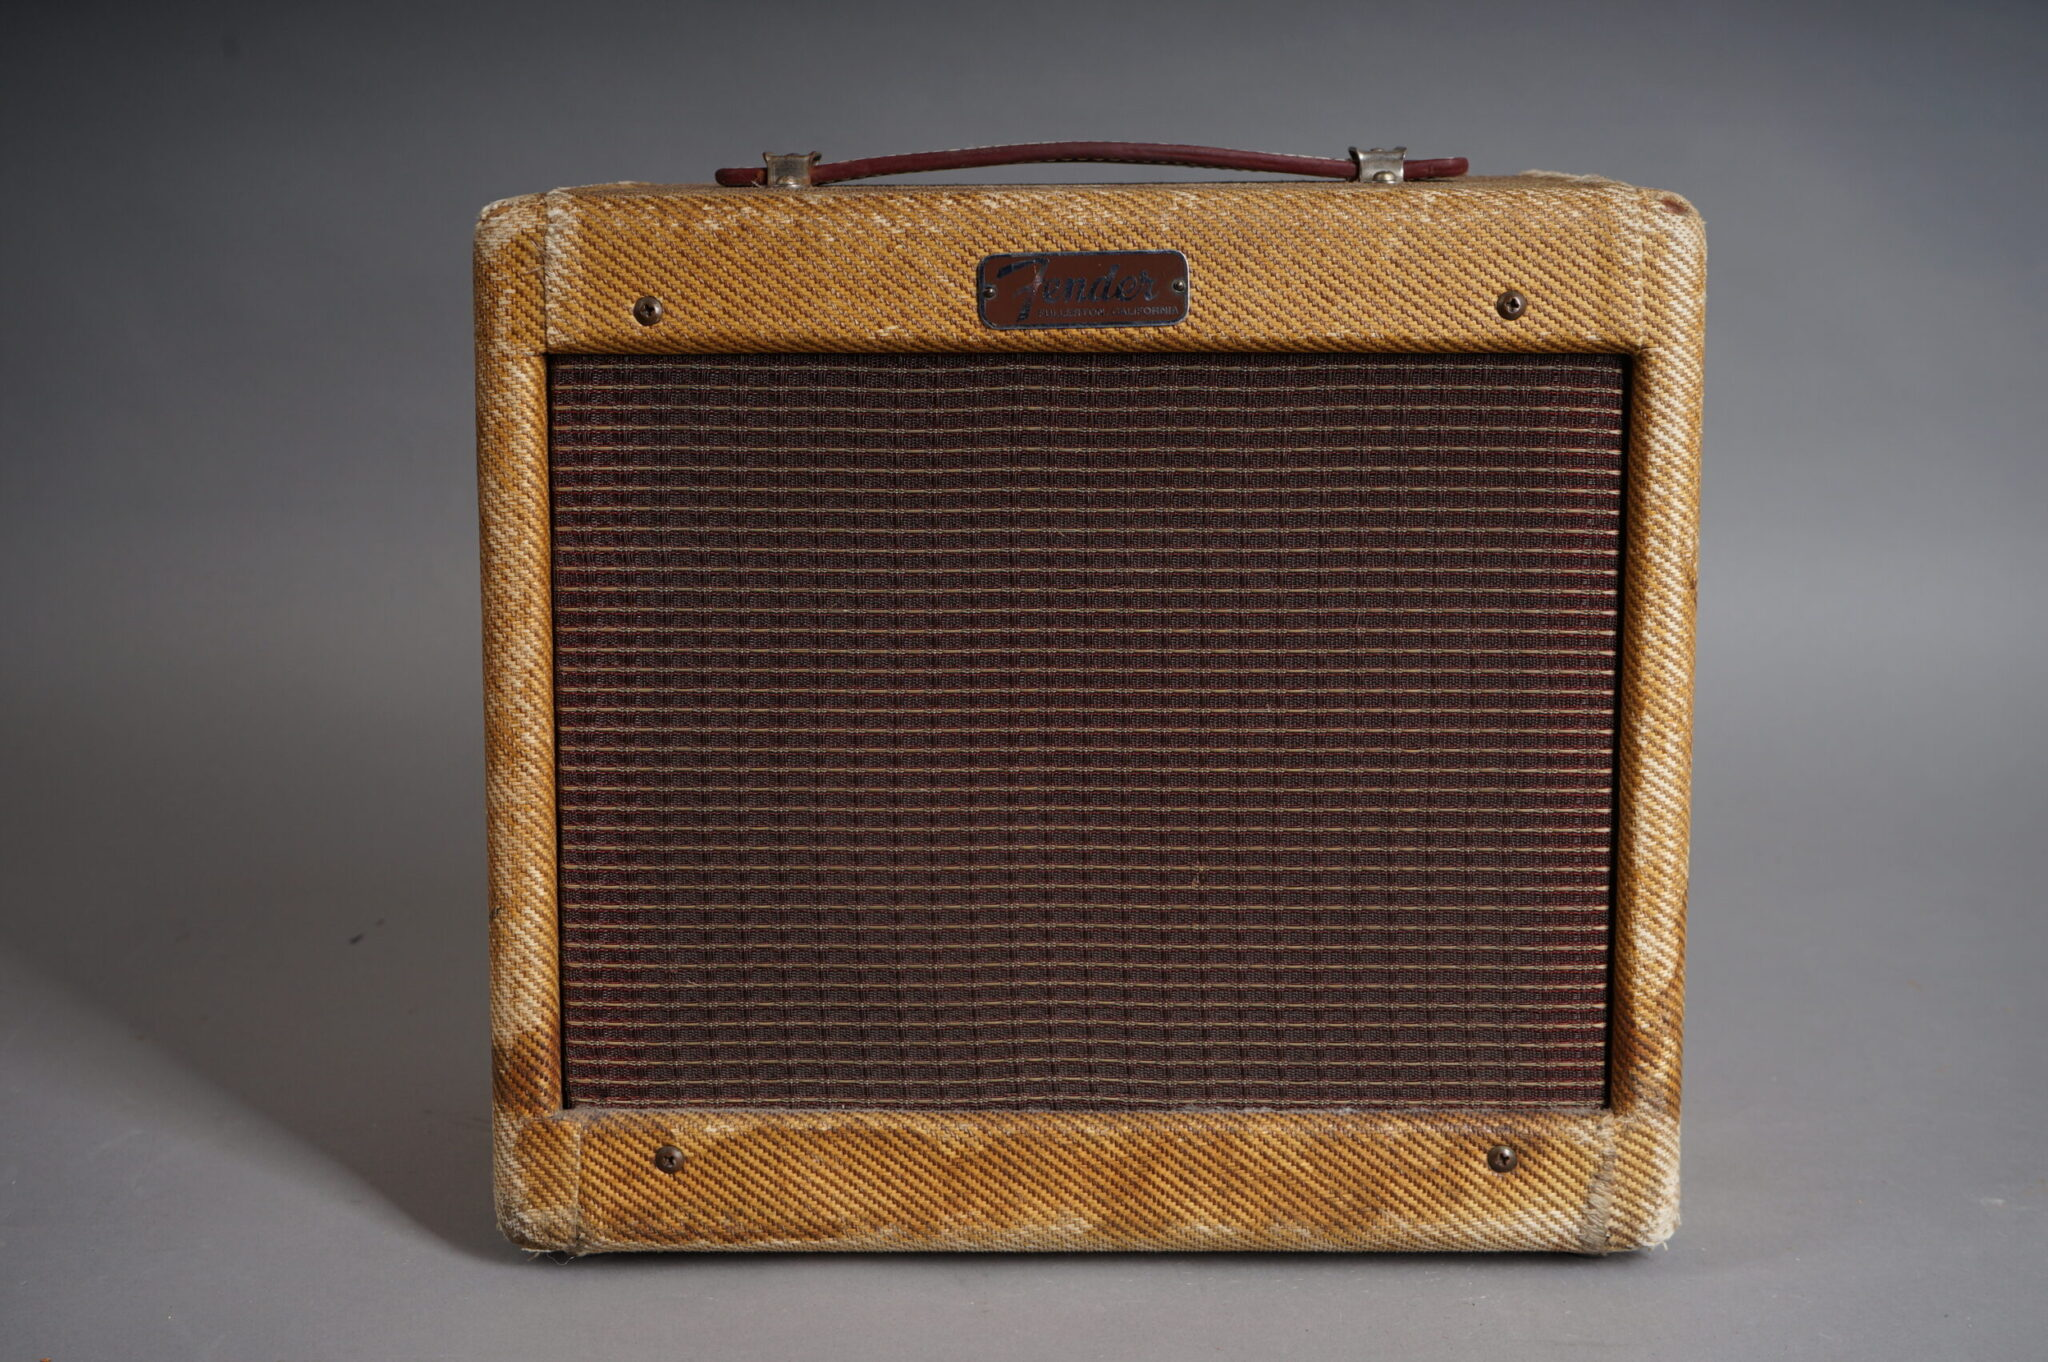 https://guitarpoint.de/app/uploads/products/1957-fender-champ-5f1-tweed/1957-Fender-5F1-Champ-C05999-2-scaled-2048x1362.jpg